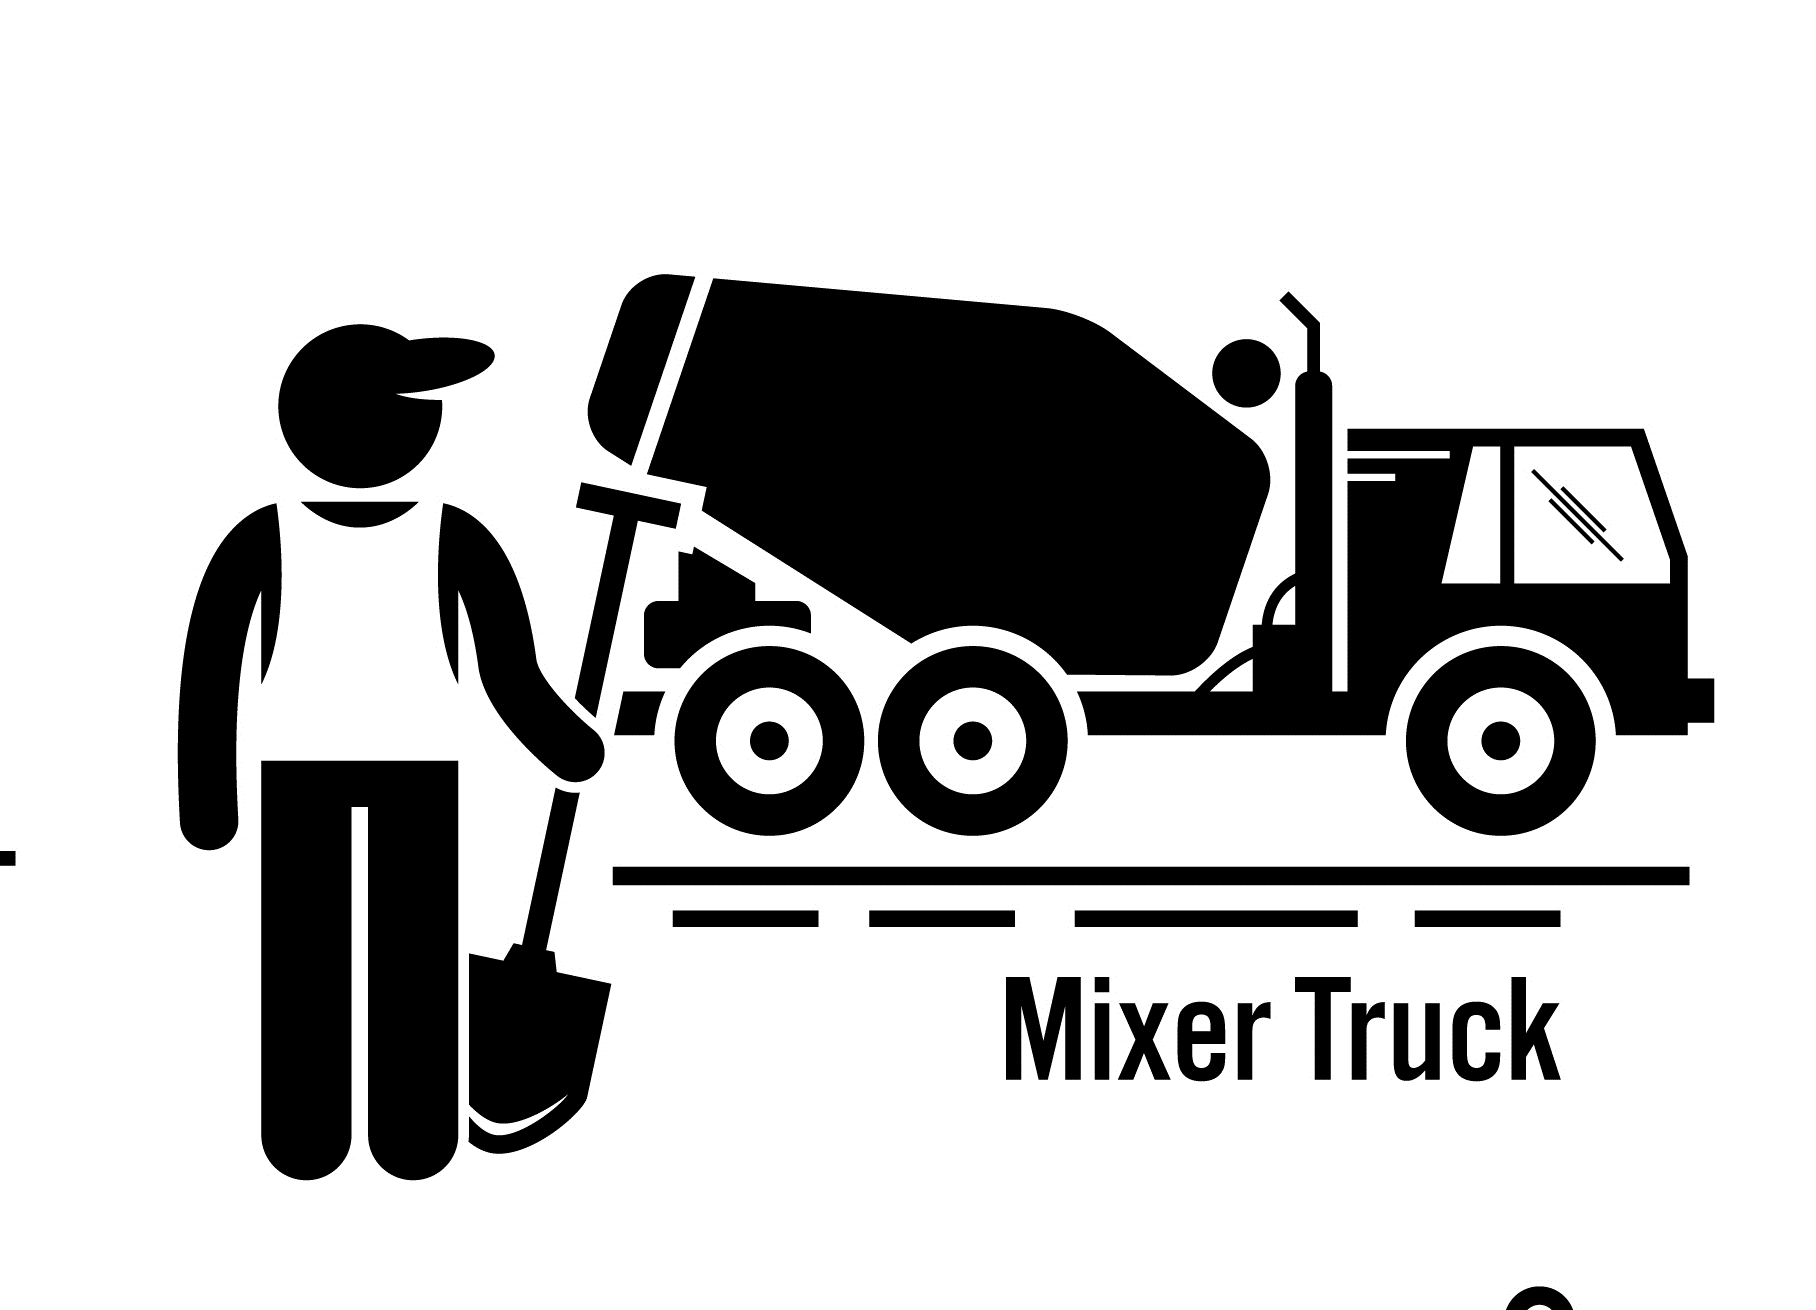 redi-mix cement mixer truck equipment loans and financing.png